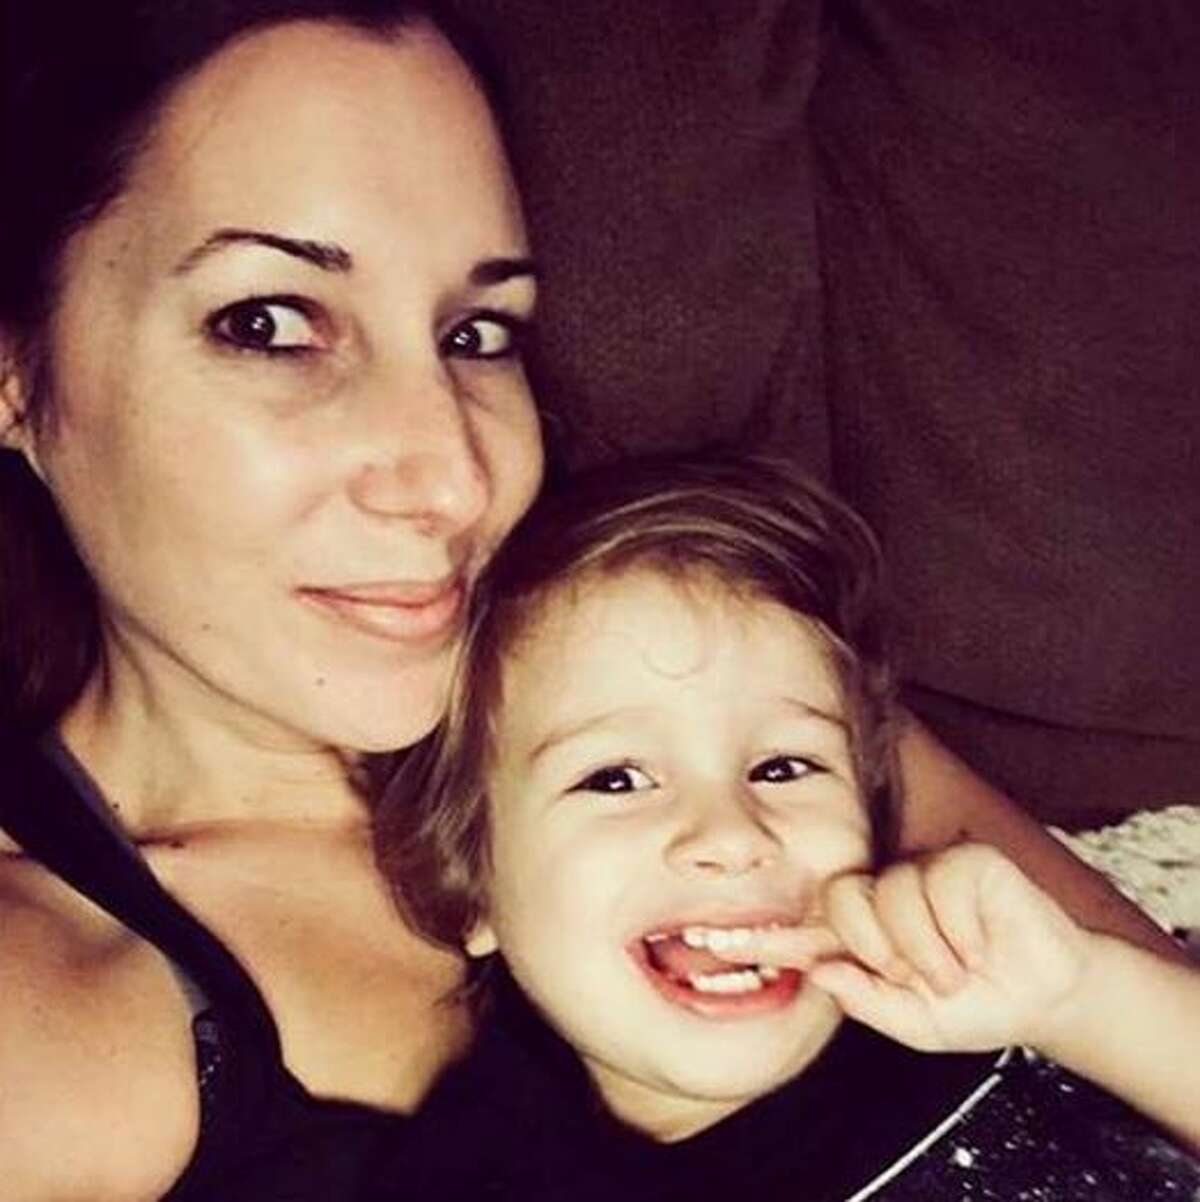 Sarah Alexis Furey, 32, was fatally shot by her estranged husband Sunday morning prior to a scheduled custody exchange of their 1-year-old son, Aaron.